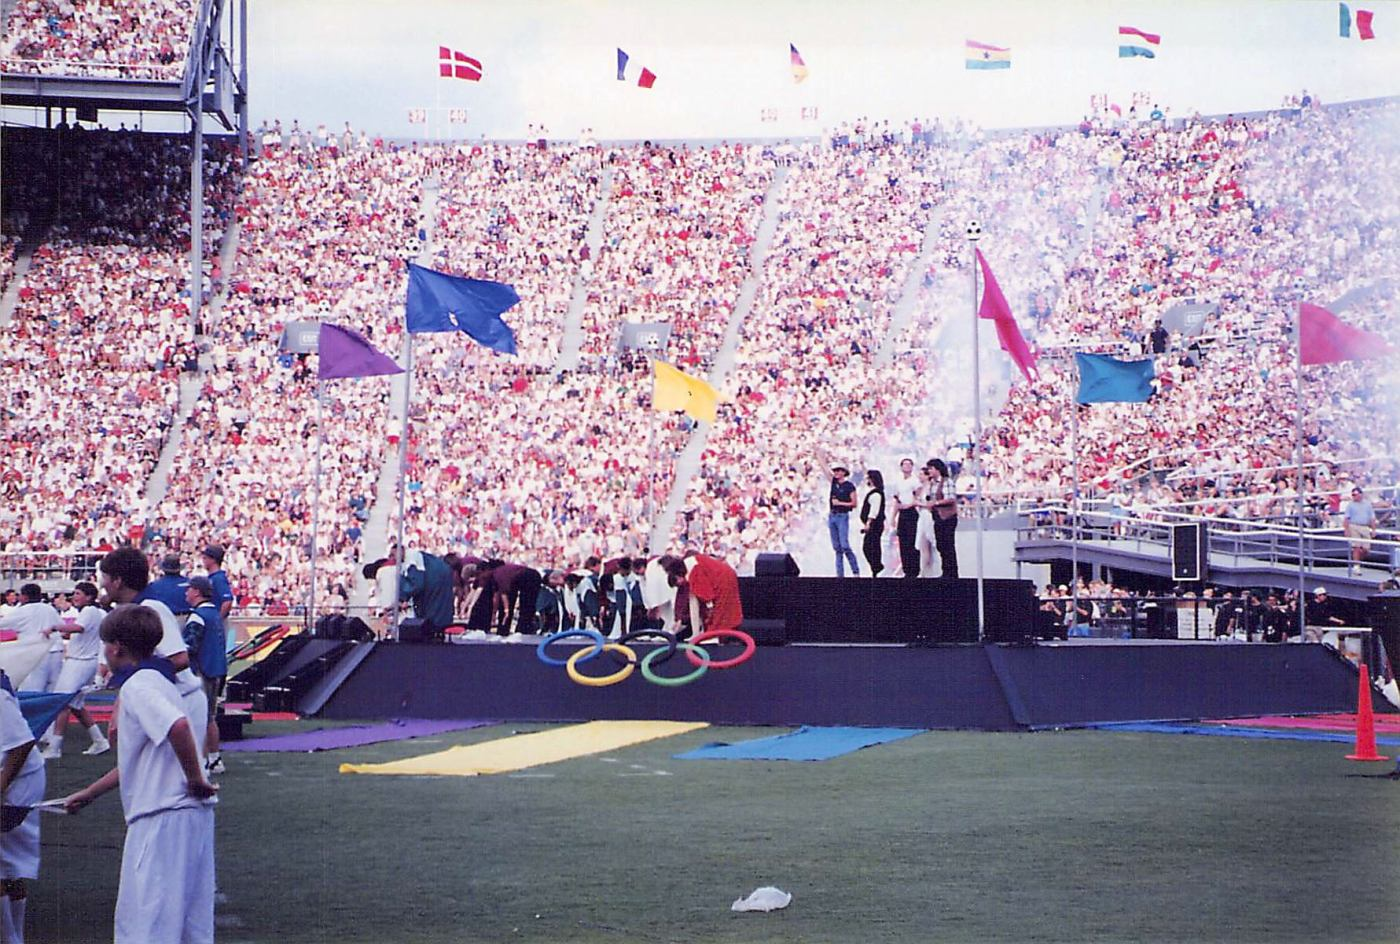 Opening ceremony for the 1996 Olympics